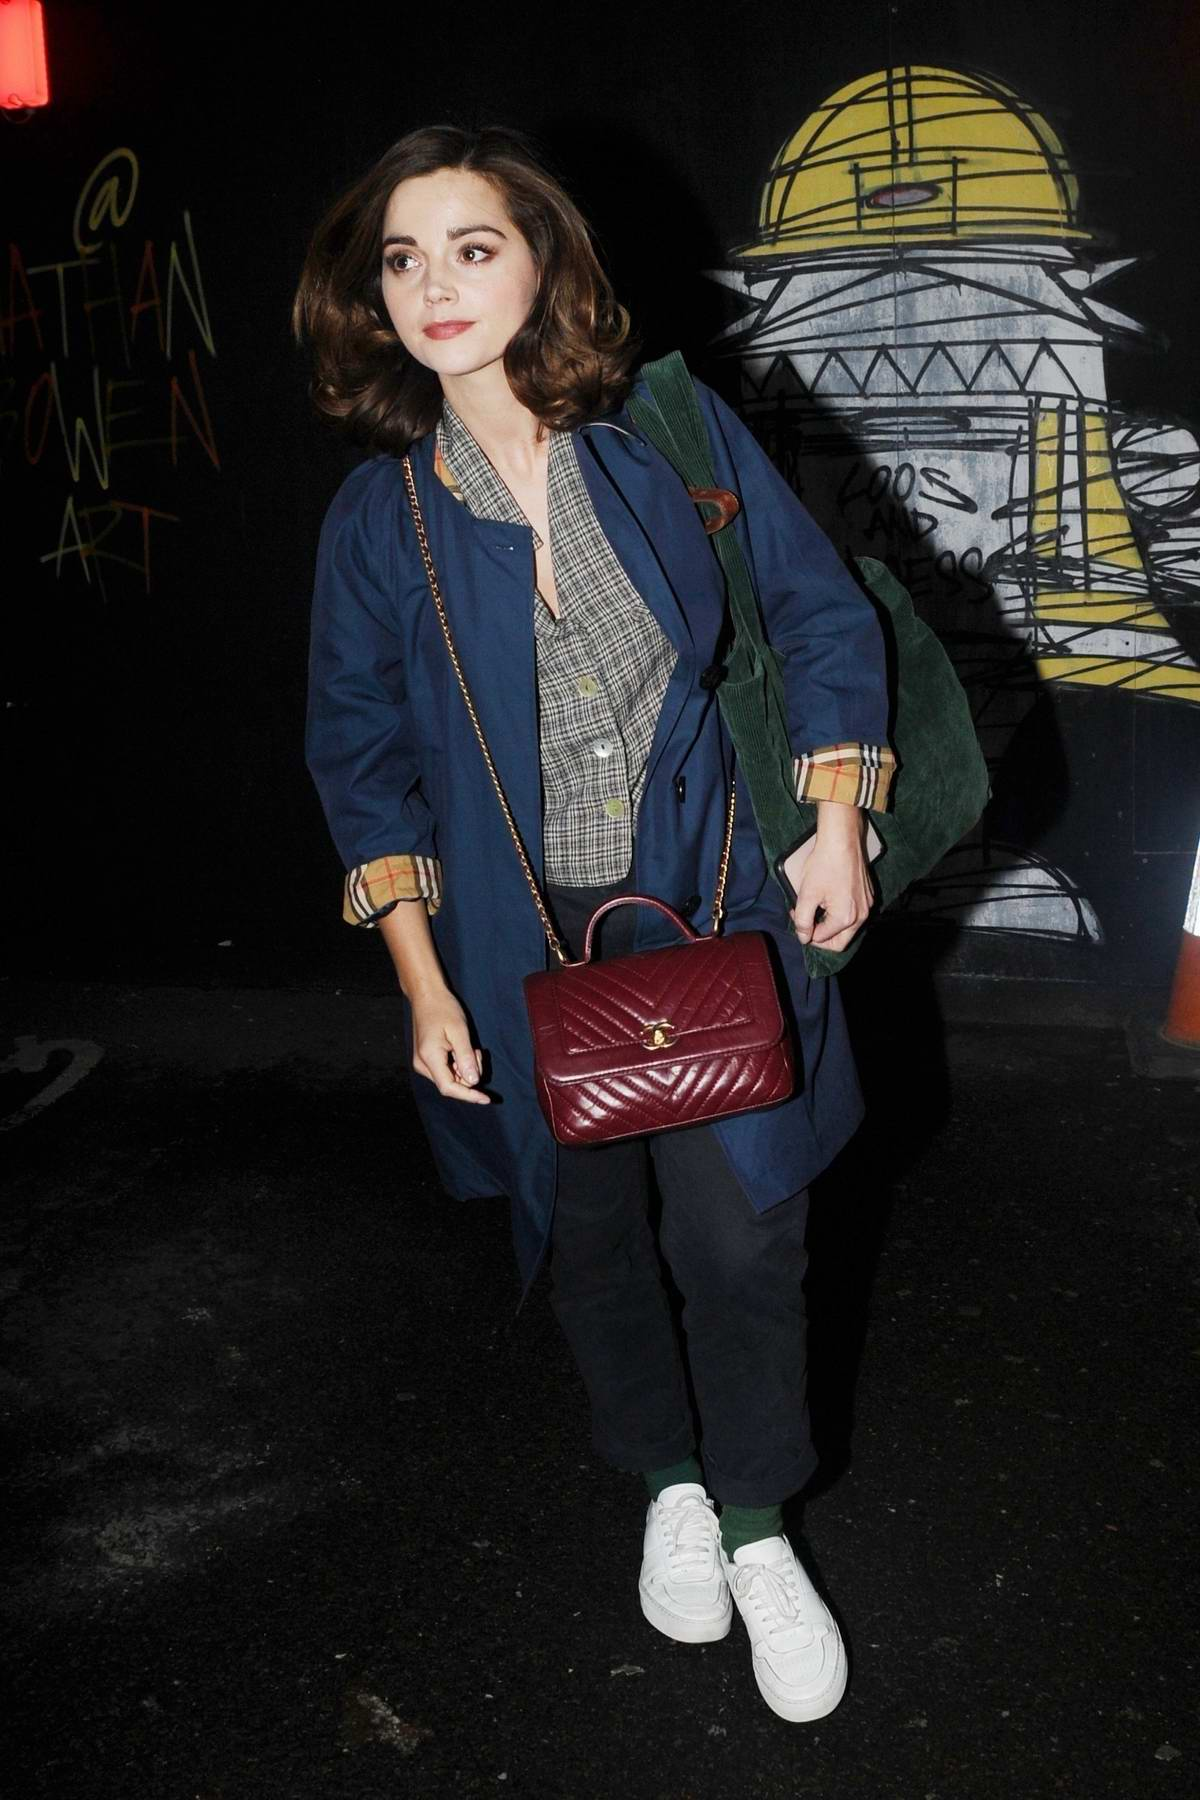 Jenna Coleman seen leaving The Old Vic theatre in London, UK